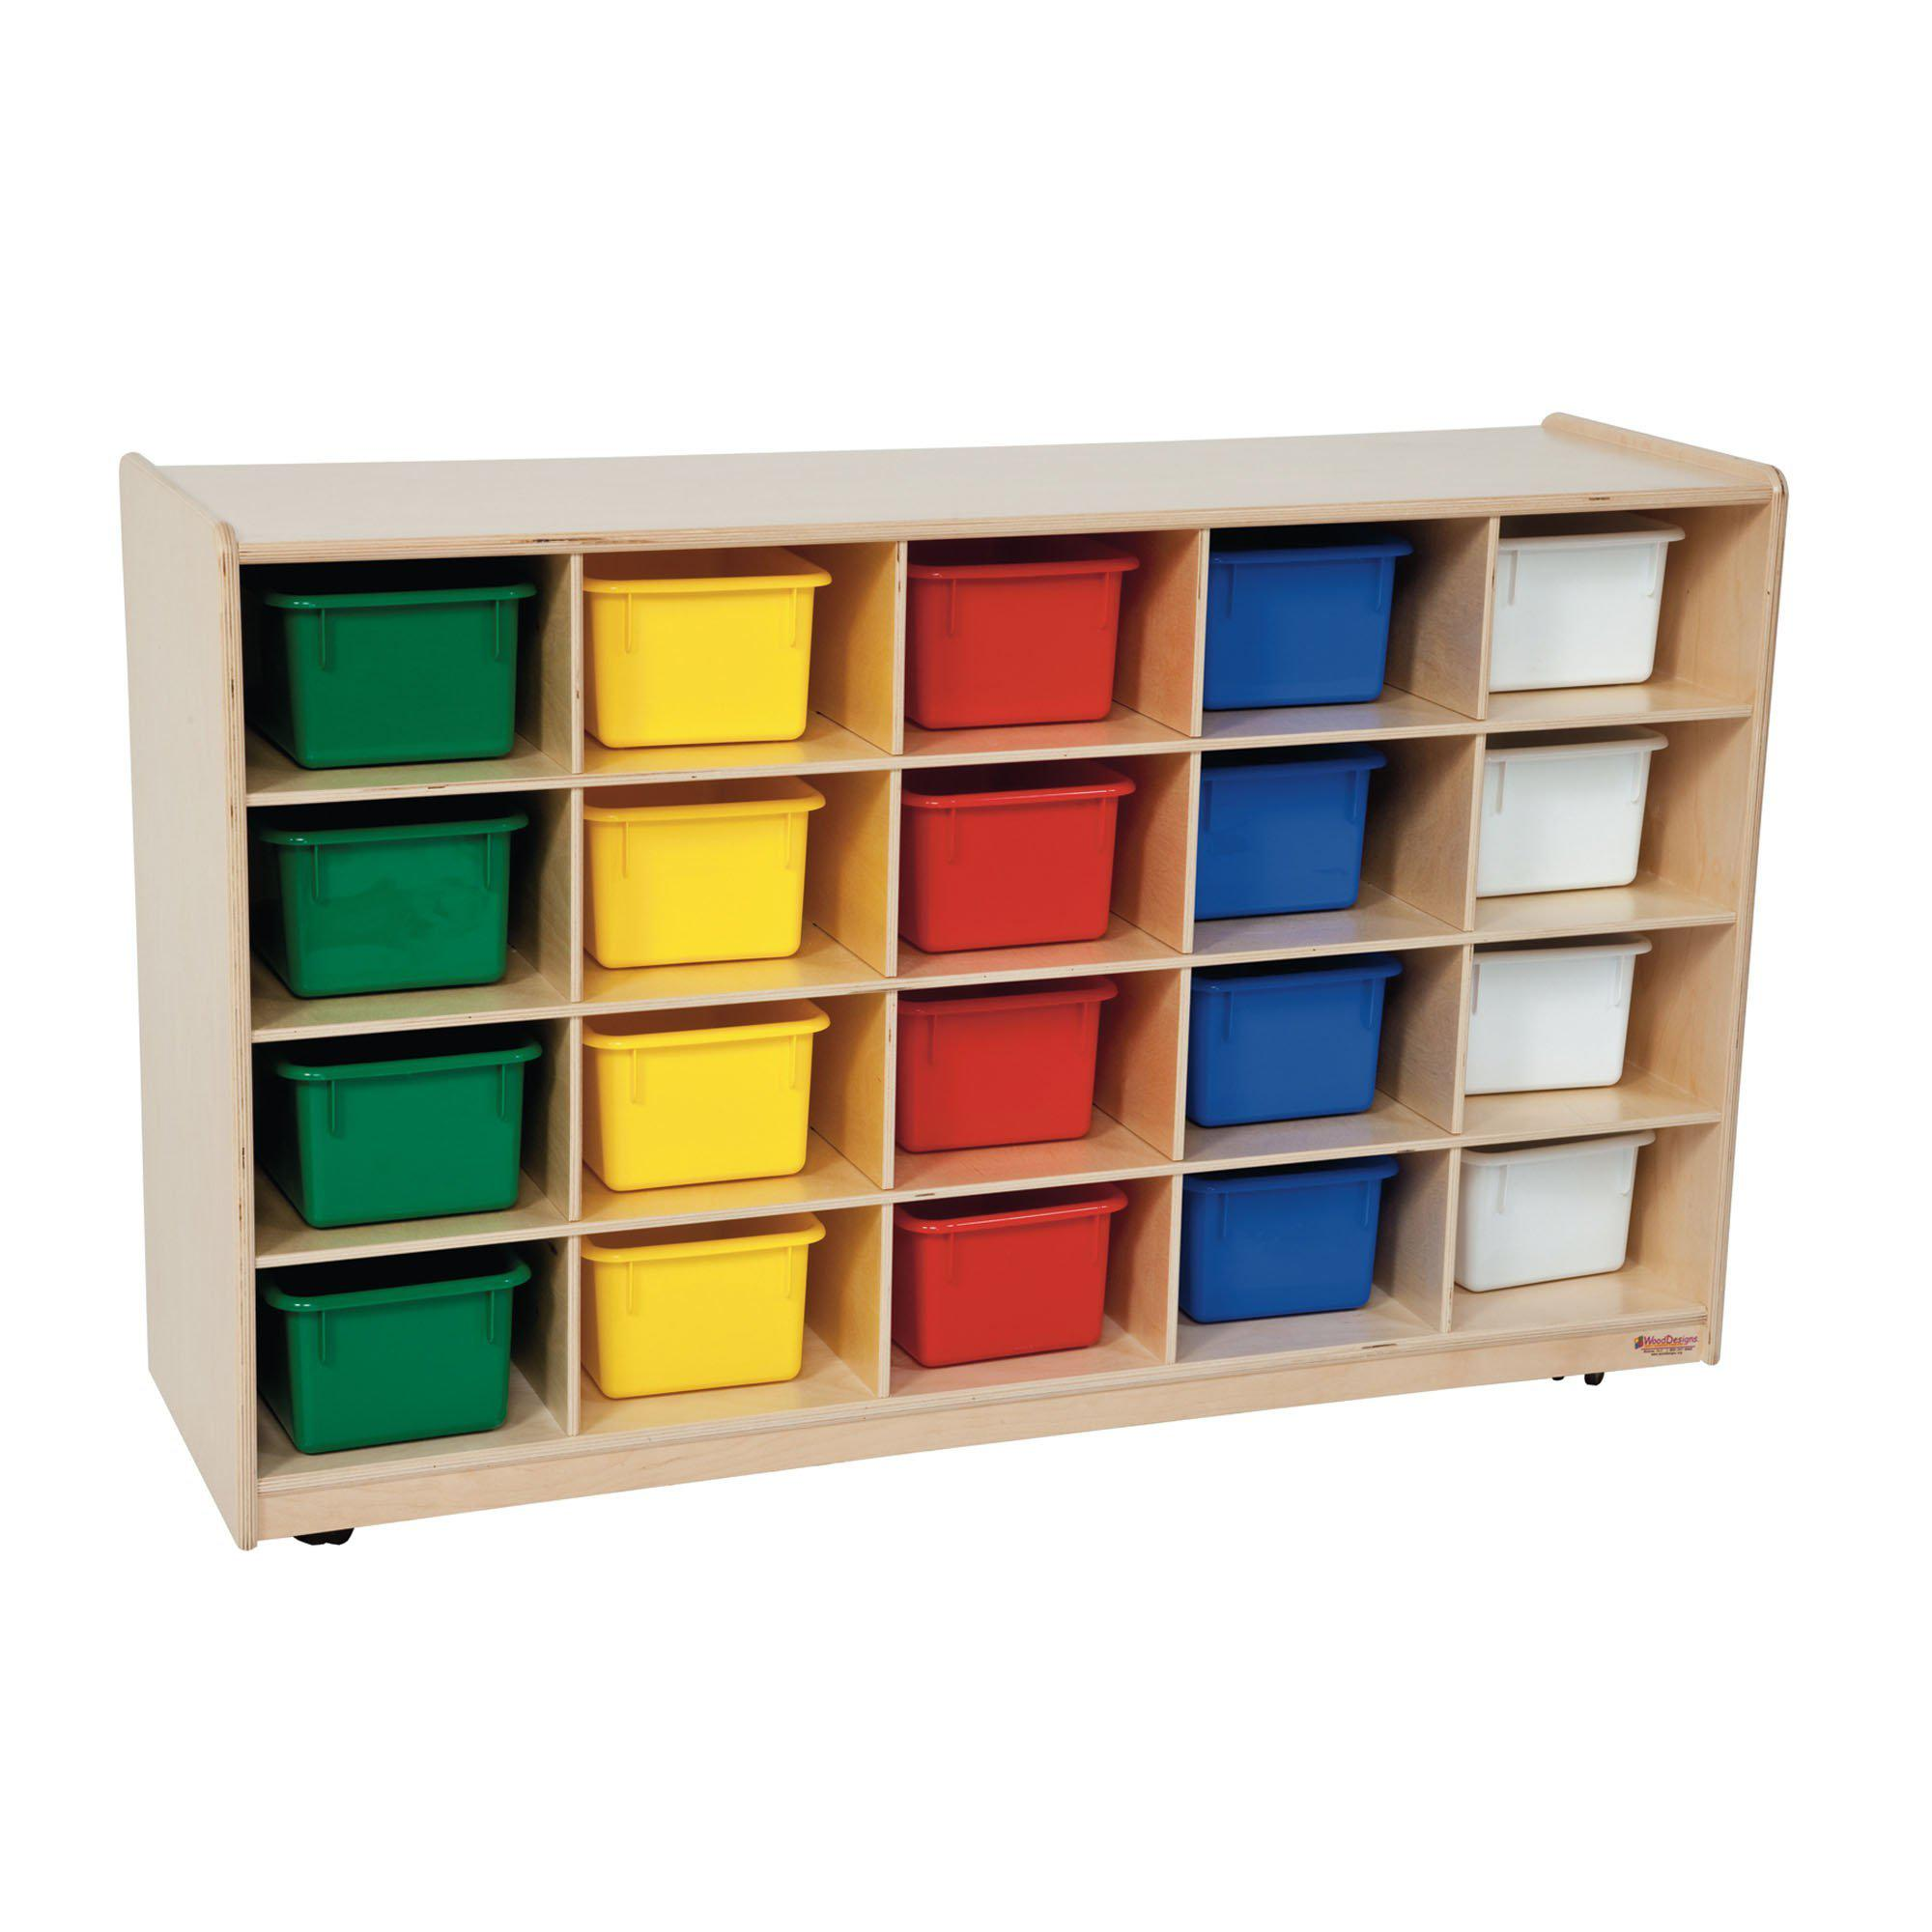 20 Tray Storage with Assorted Trays